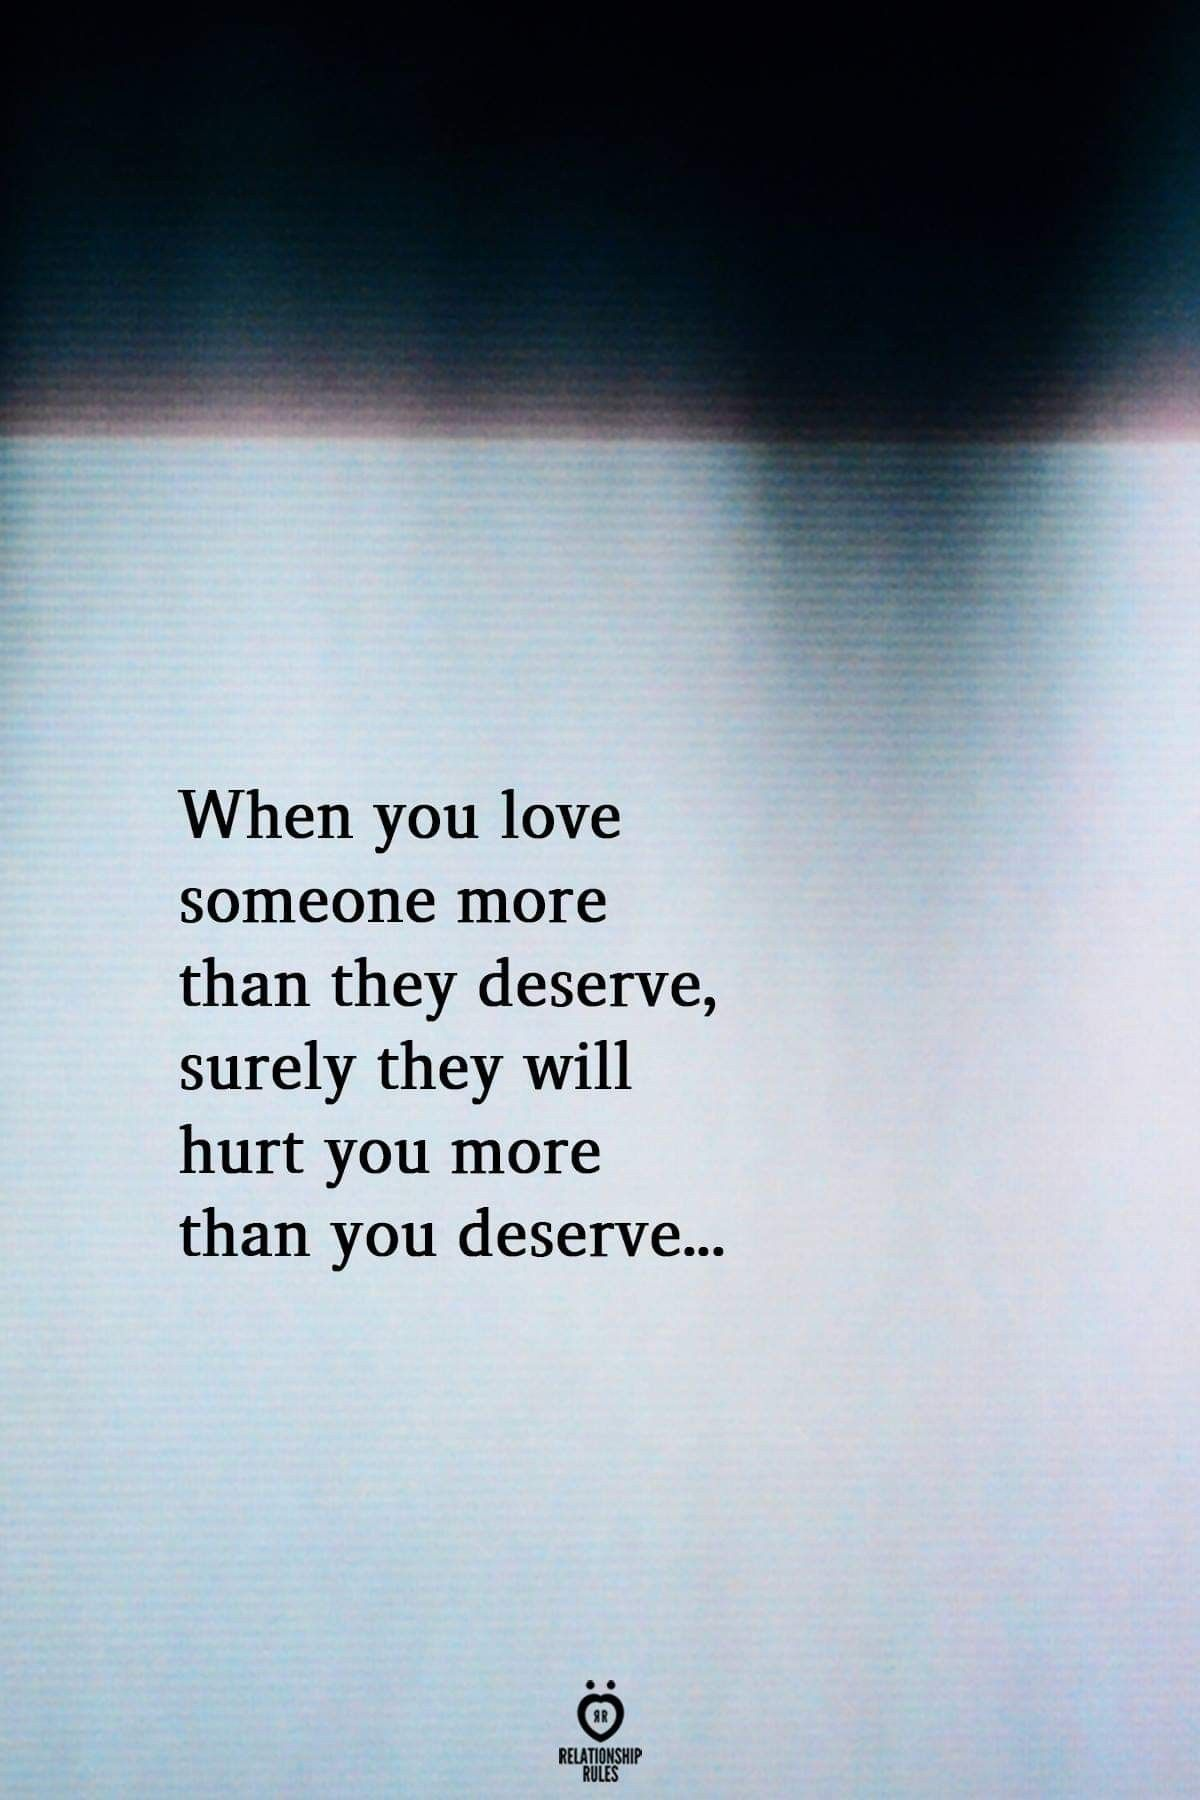 You Love Me More Than I Deserve And All I Do Is Hurt You More Than You Deserve You De I Deserve Better Quotes Deserve Better Quotes You Deserve Better Quotes